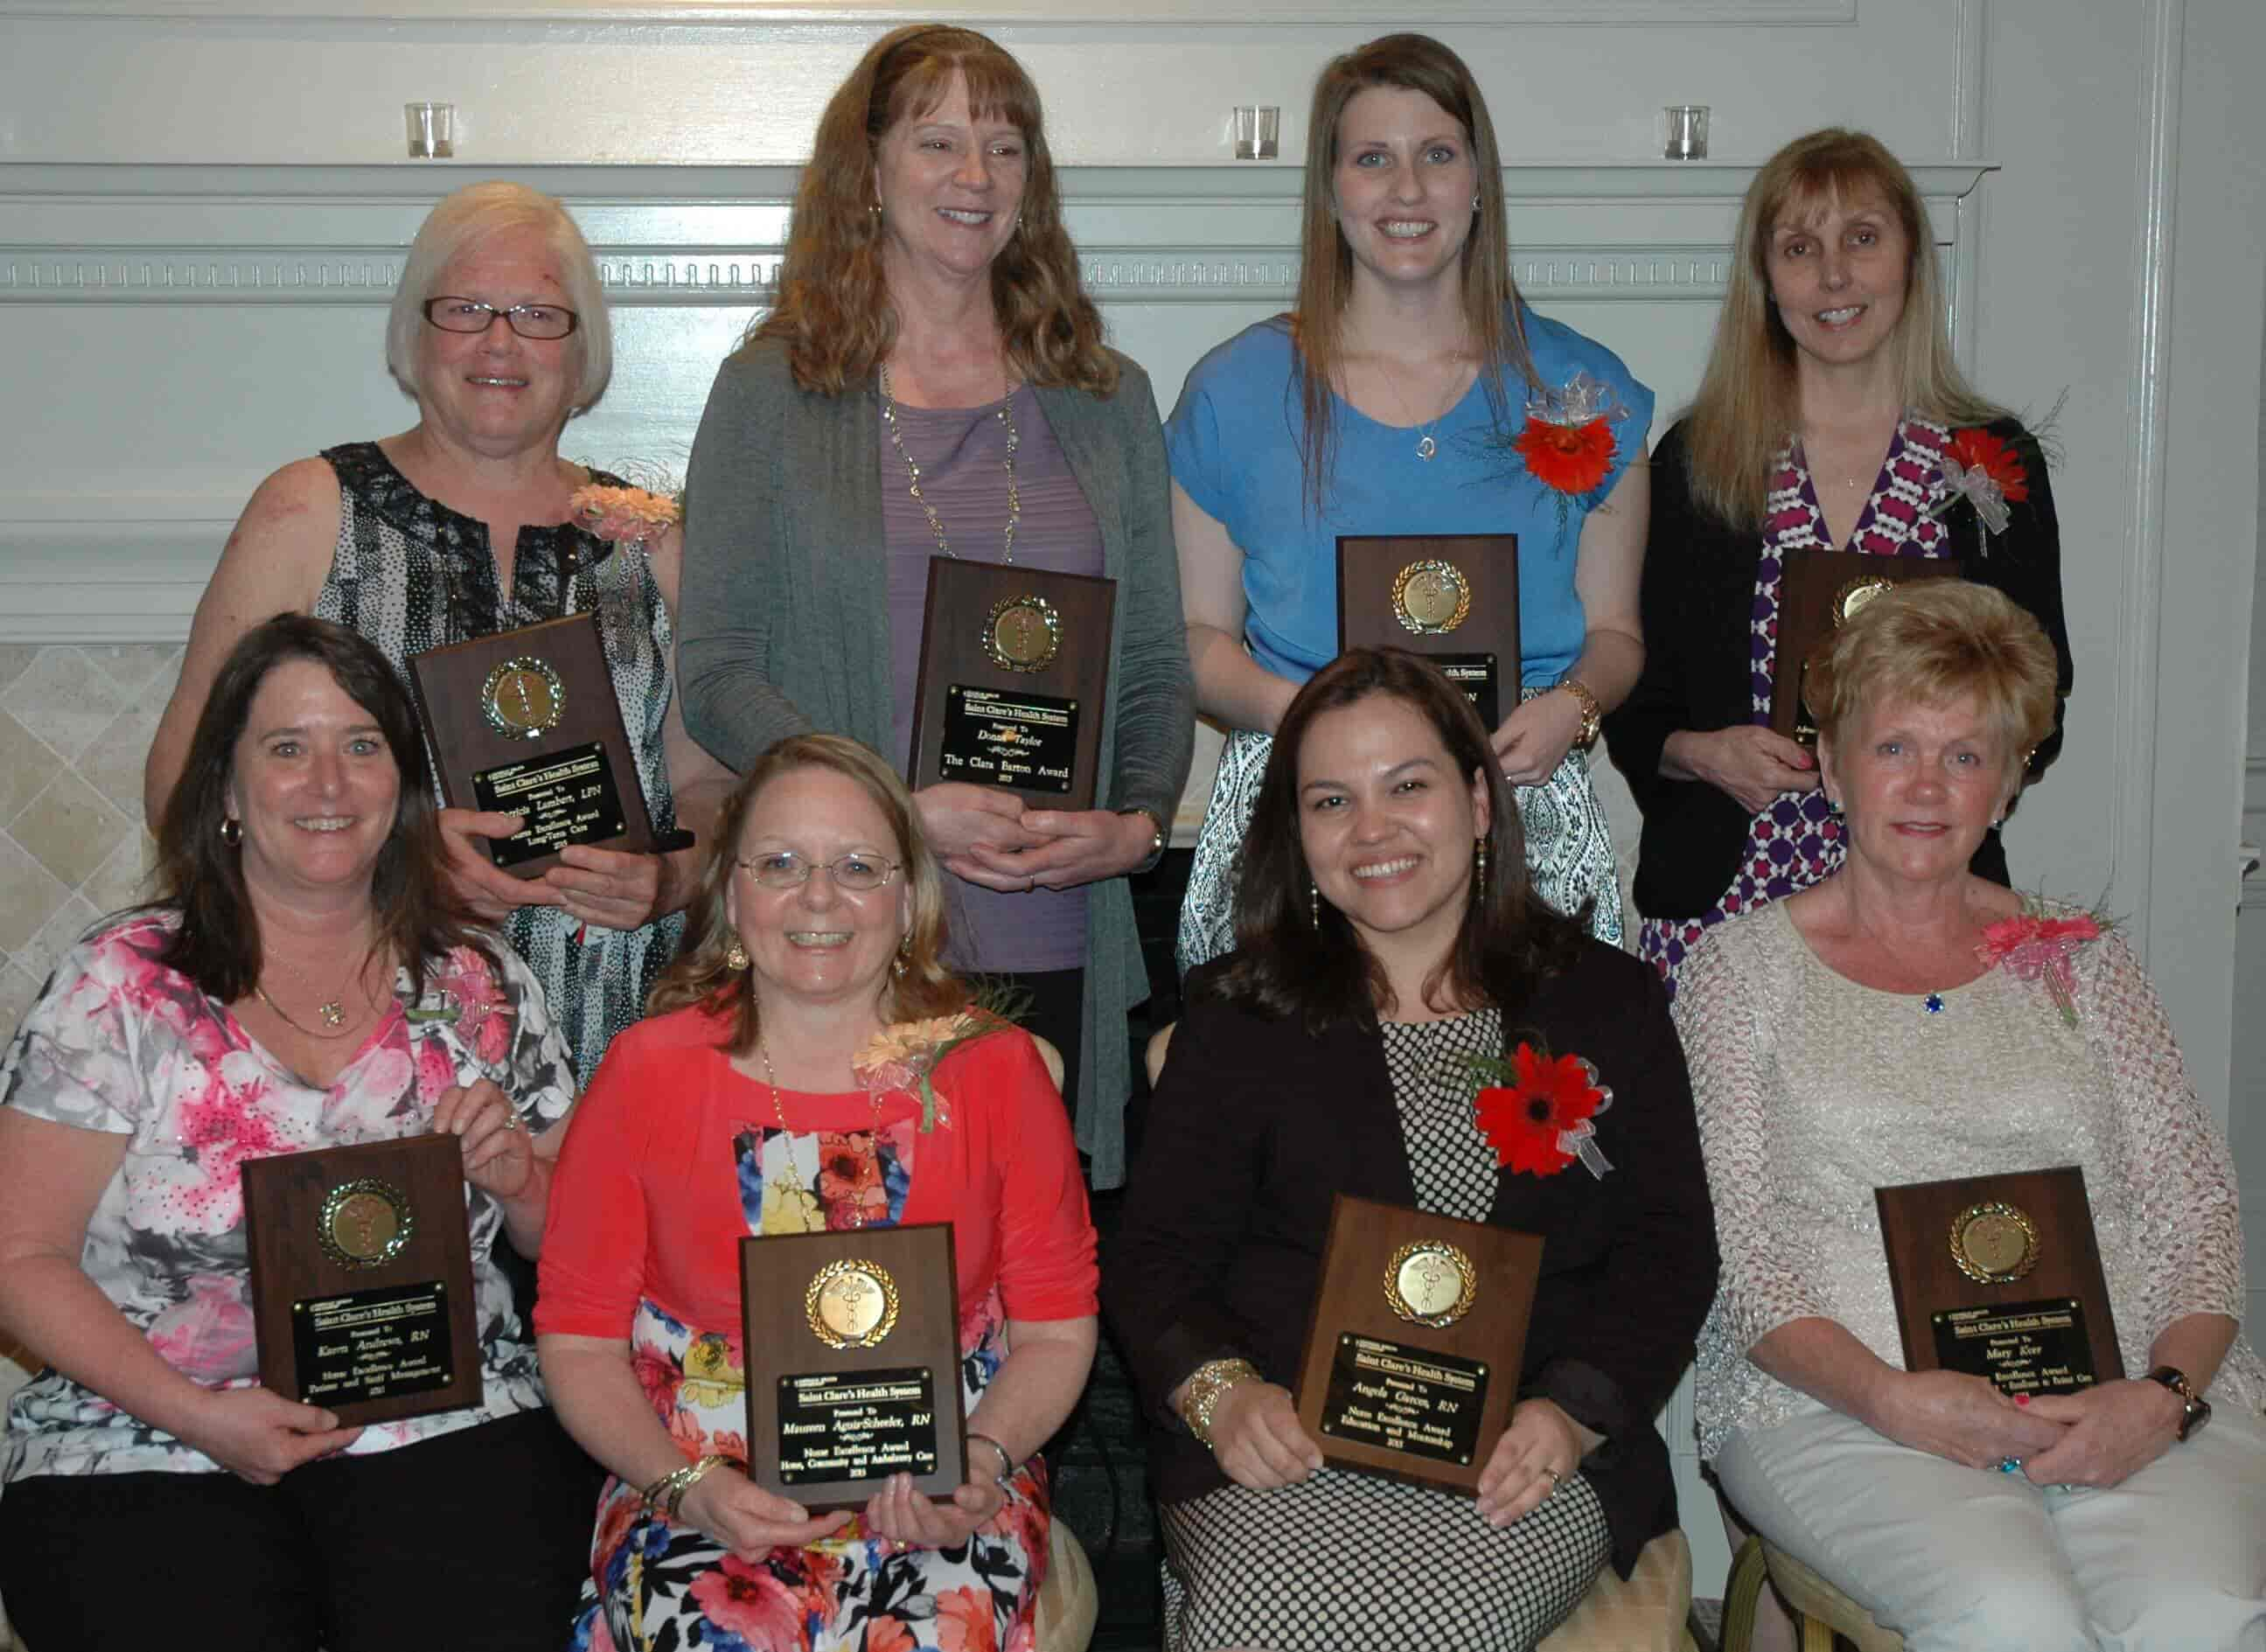 Group of 8 nurses holding excellence award